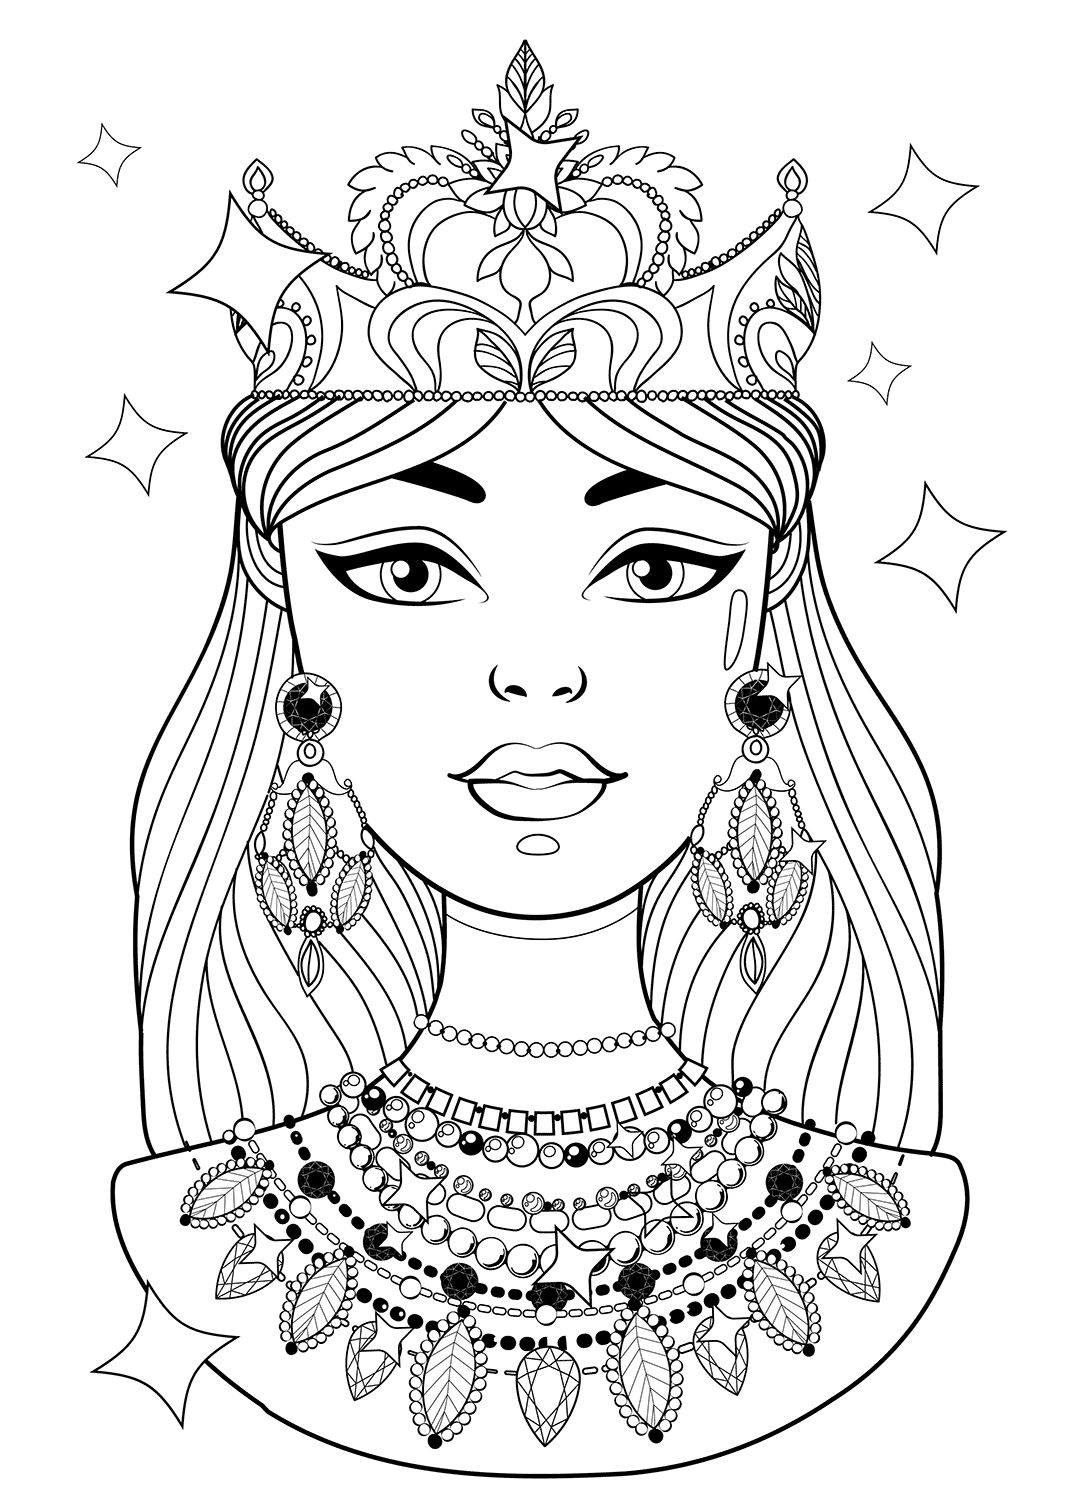 Shining Princess With Necklaces Coloring Pages Coloring Pages Princess Coloring Pages Coloring Pages For Kids